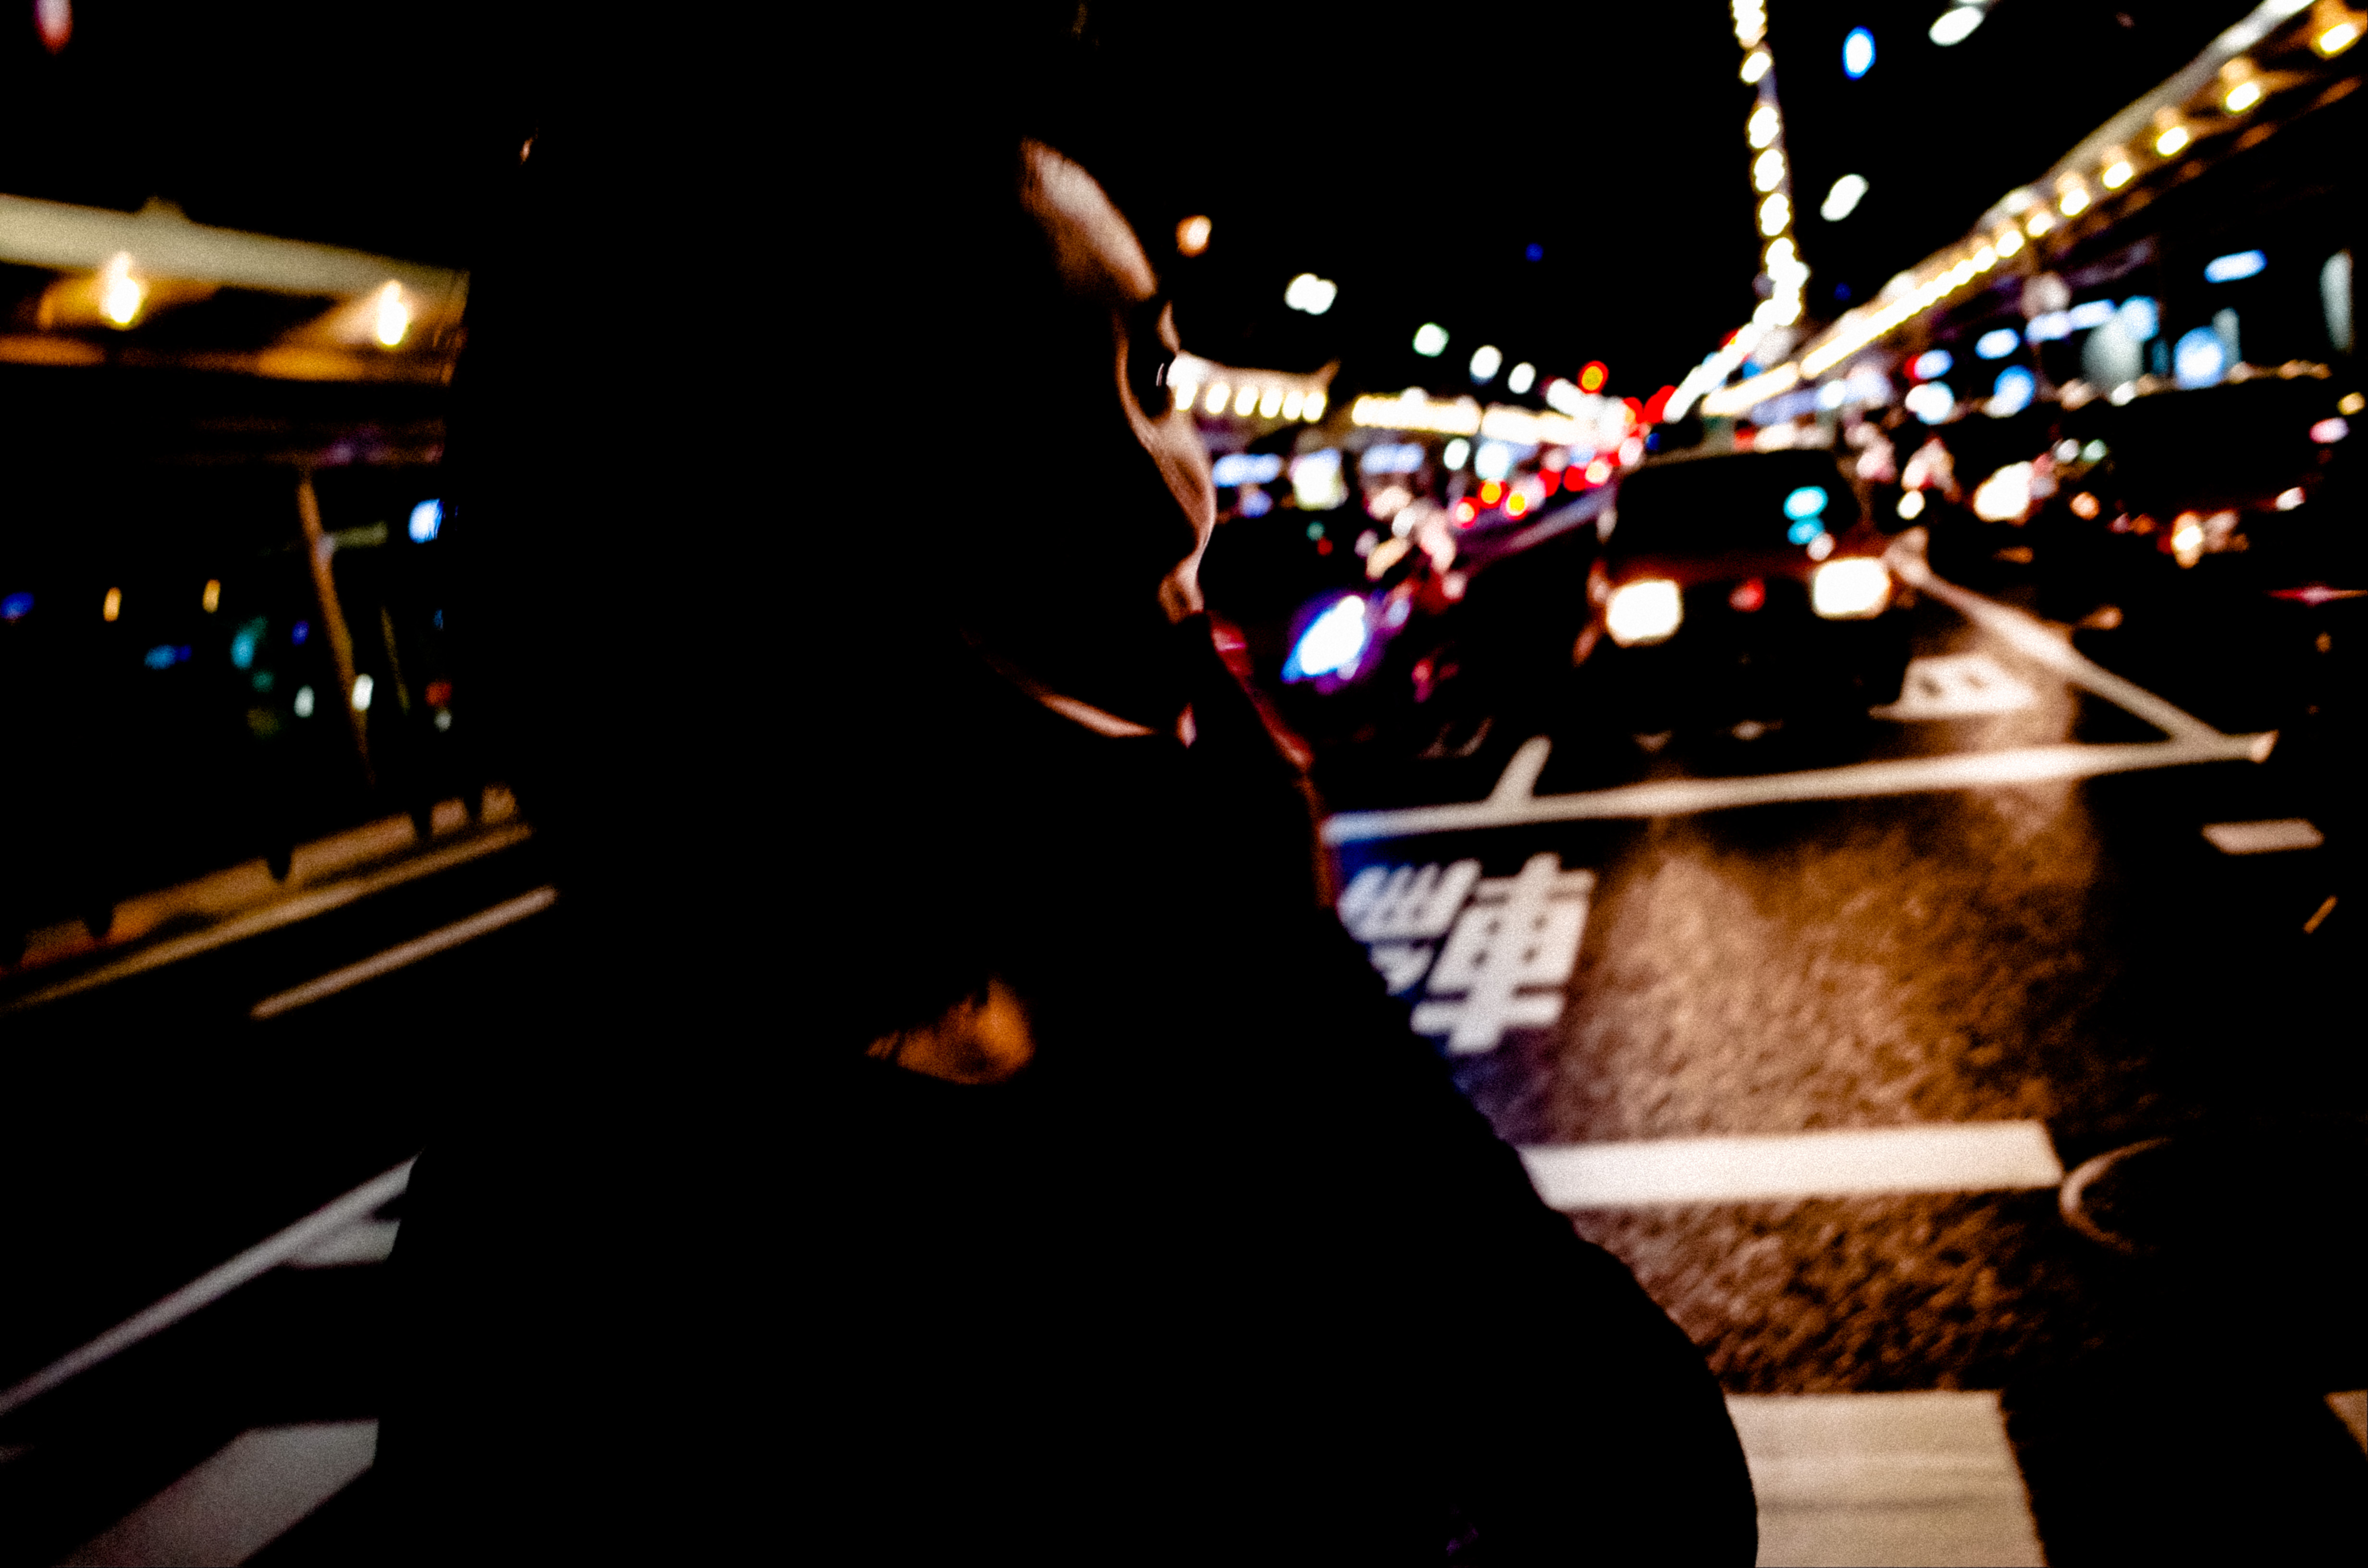 Cindy walking at night, on the streets of Kyoto, 2017